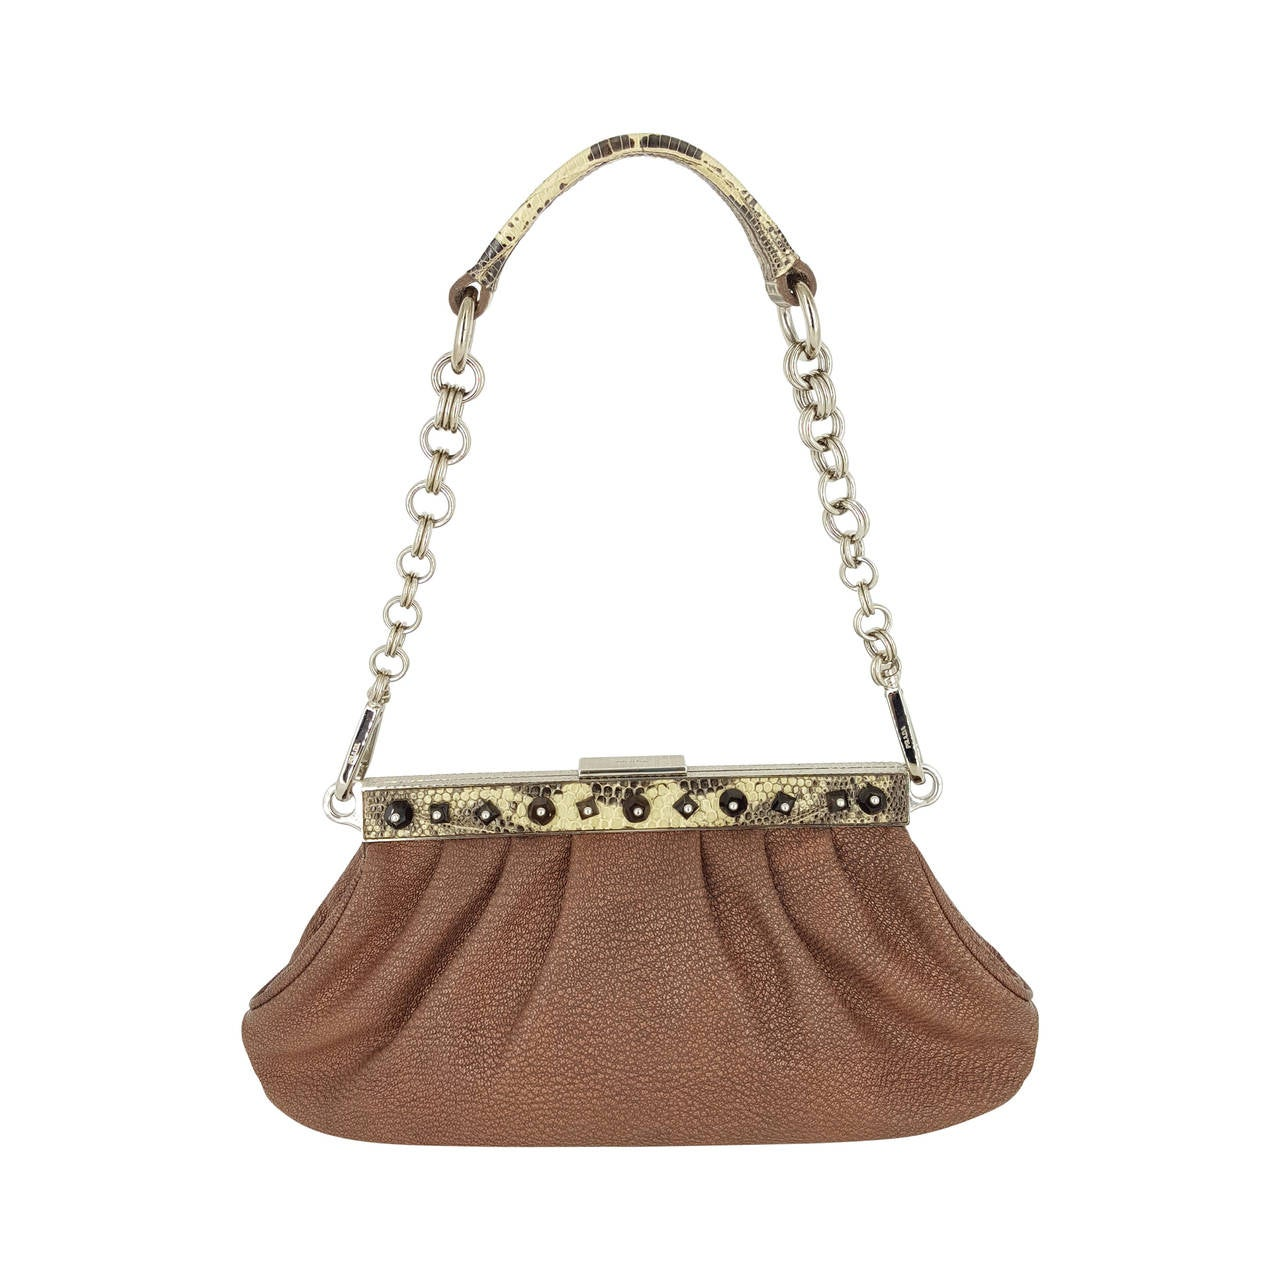 Prada Limited Edition Leather And Python Trim Pochette With Crystal Studs.